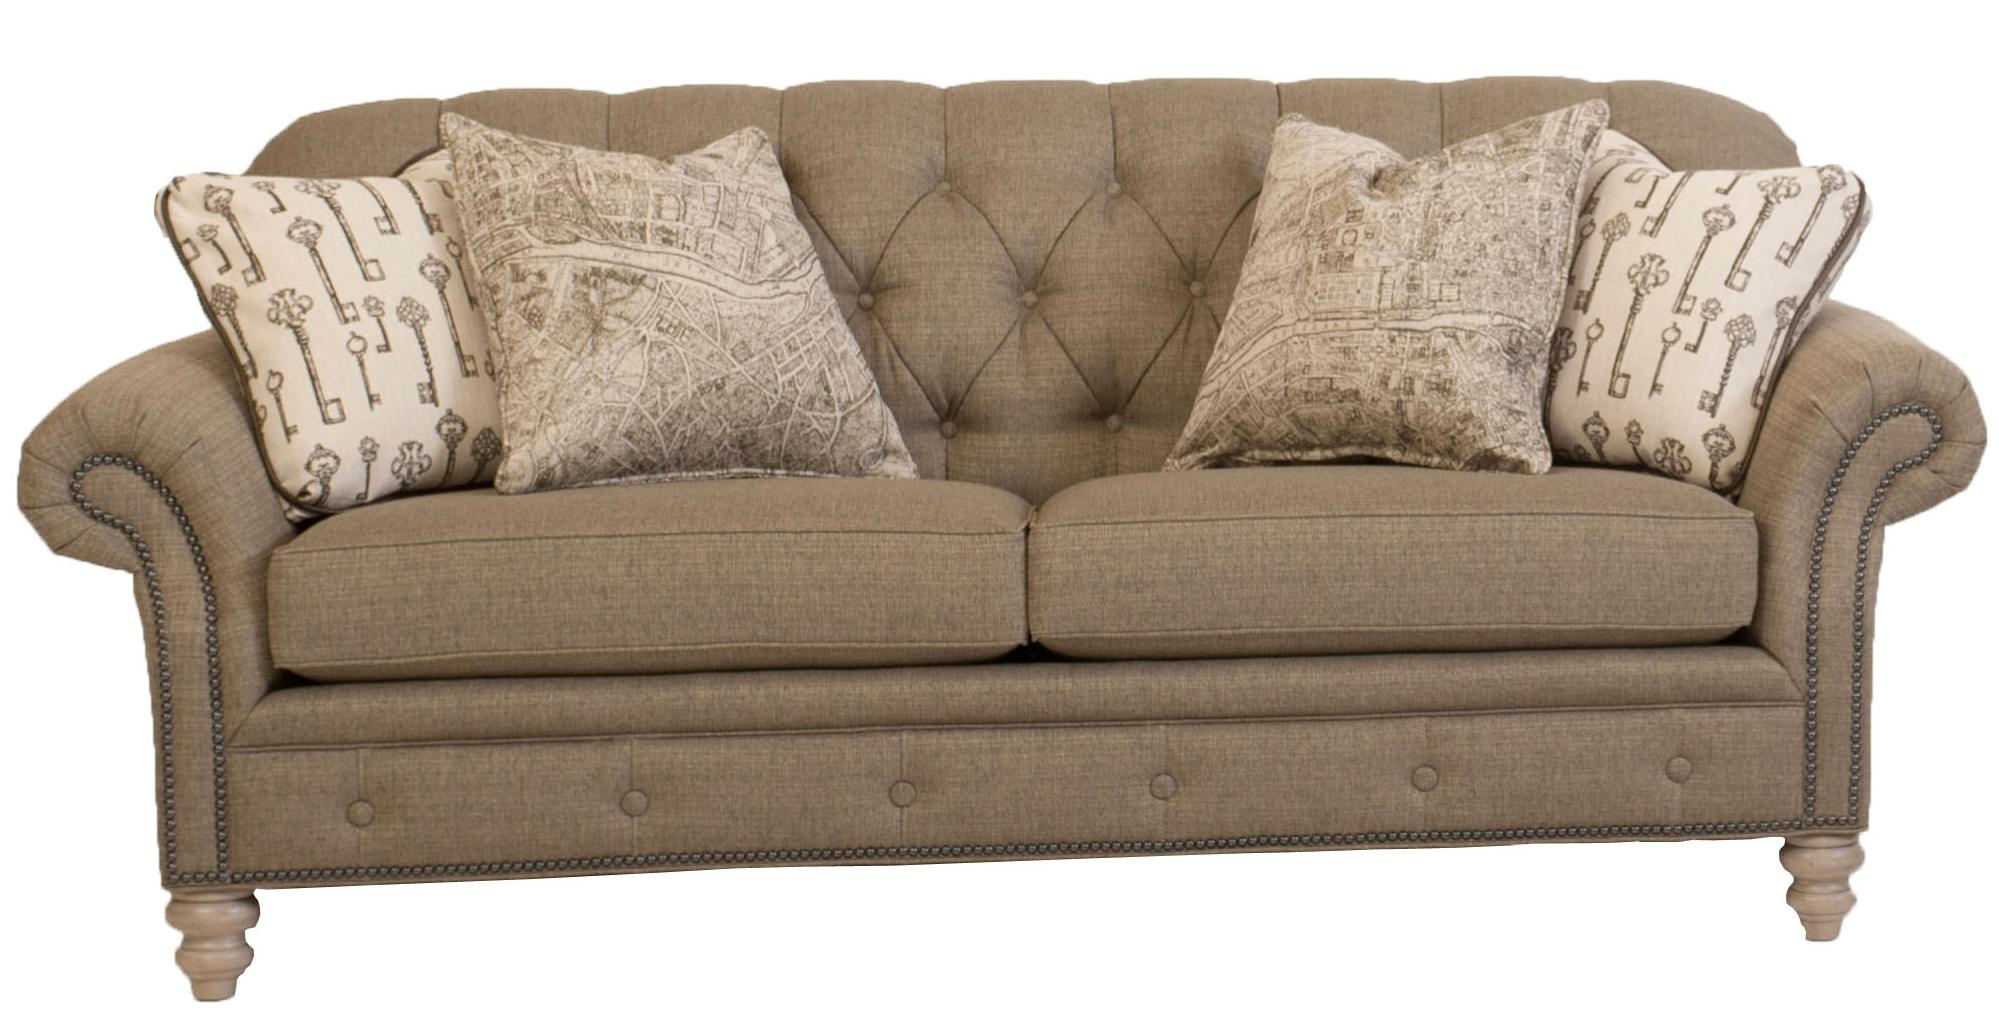 396 Sofa by Smith Brothers at Turk Furniture